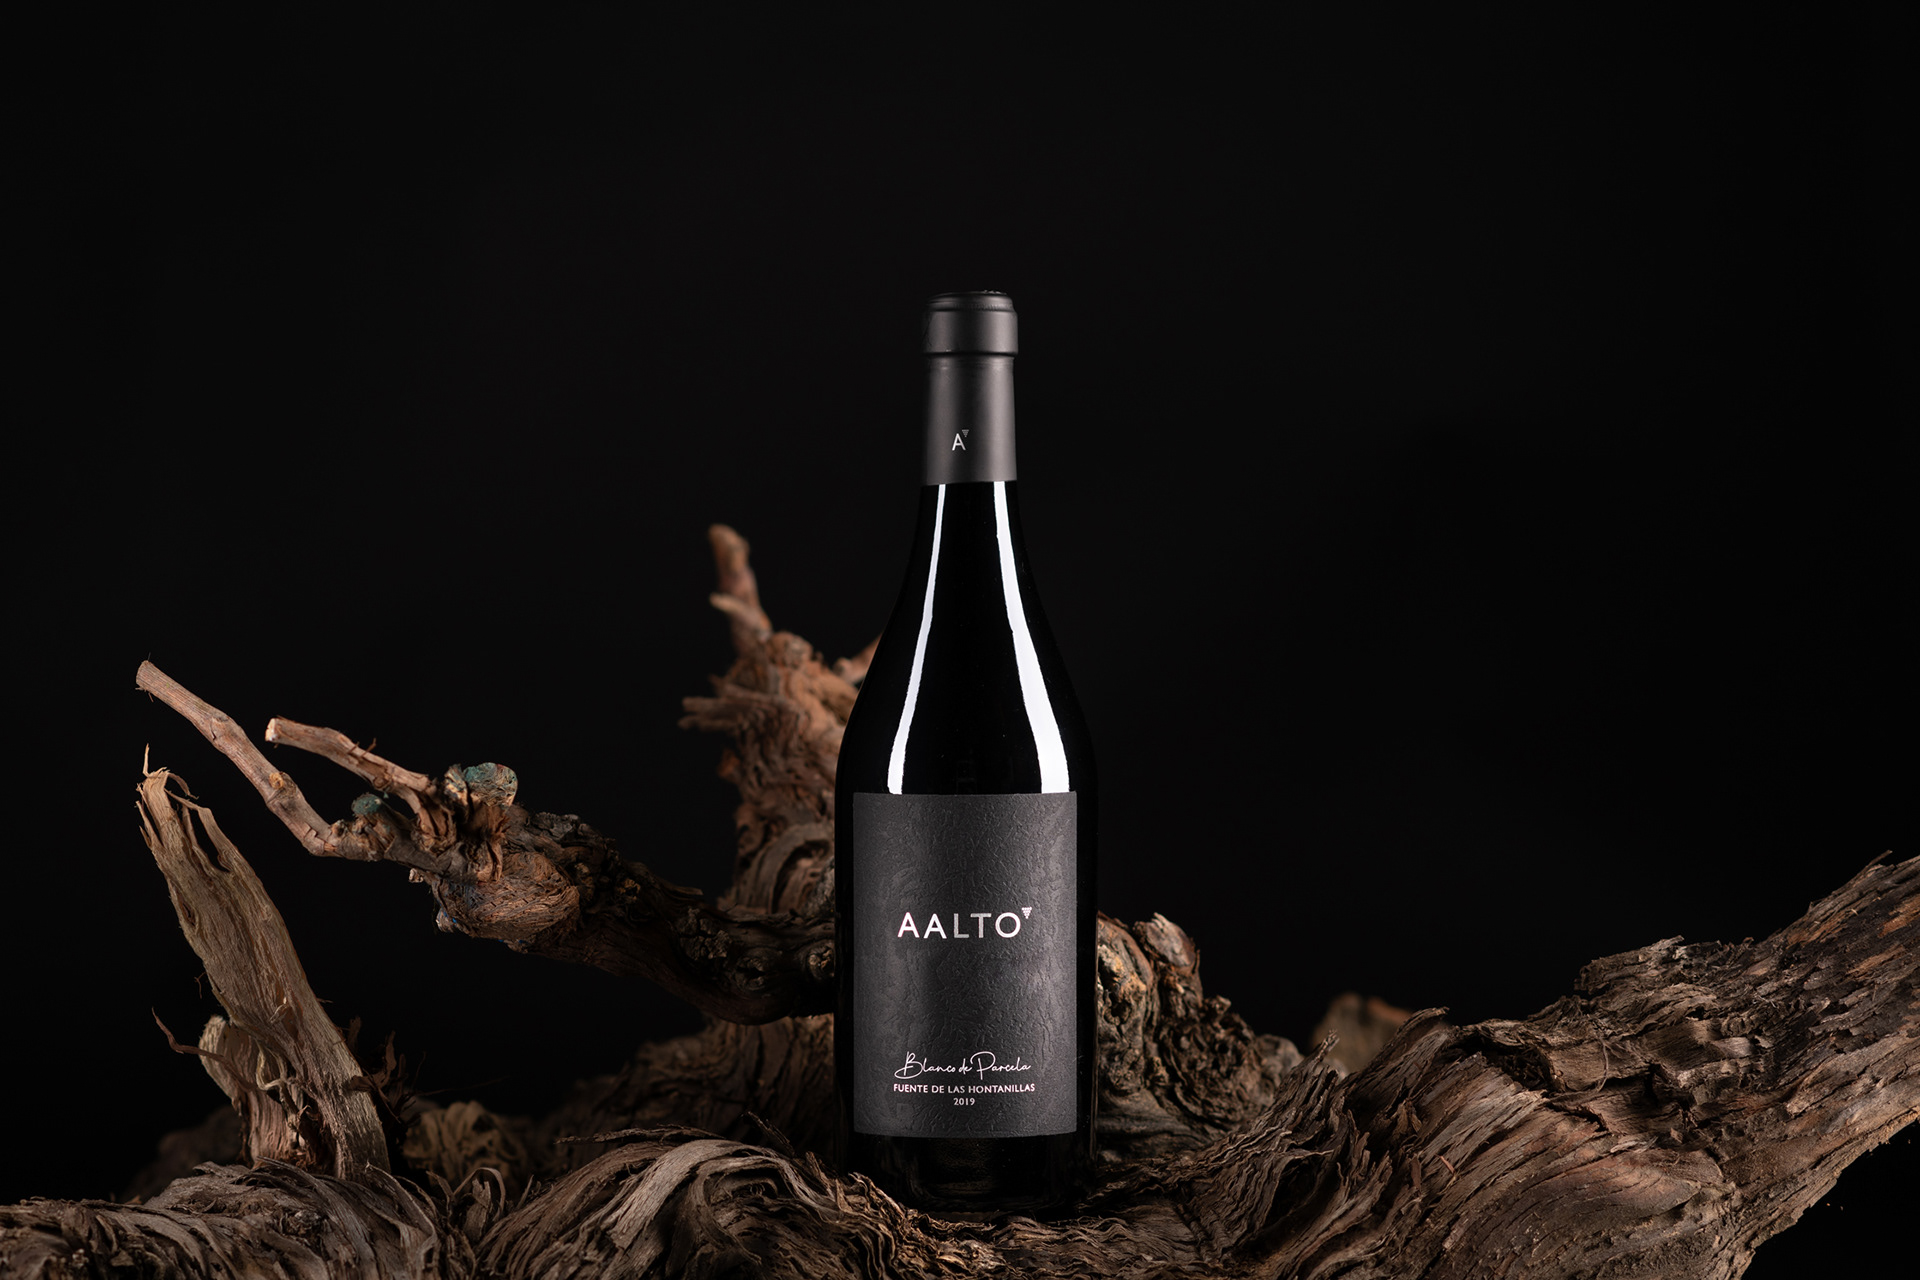 Label Design for the First Limited White Wine of Aalto Winery by Azote Studio